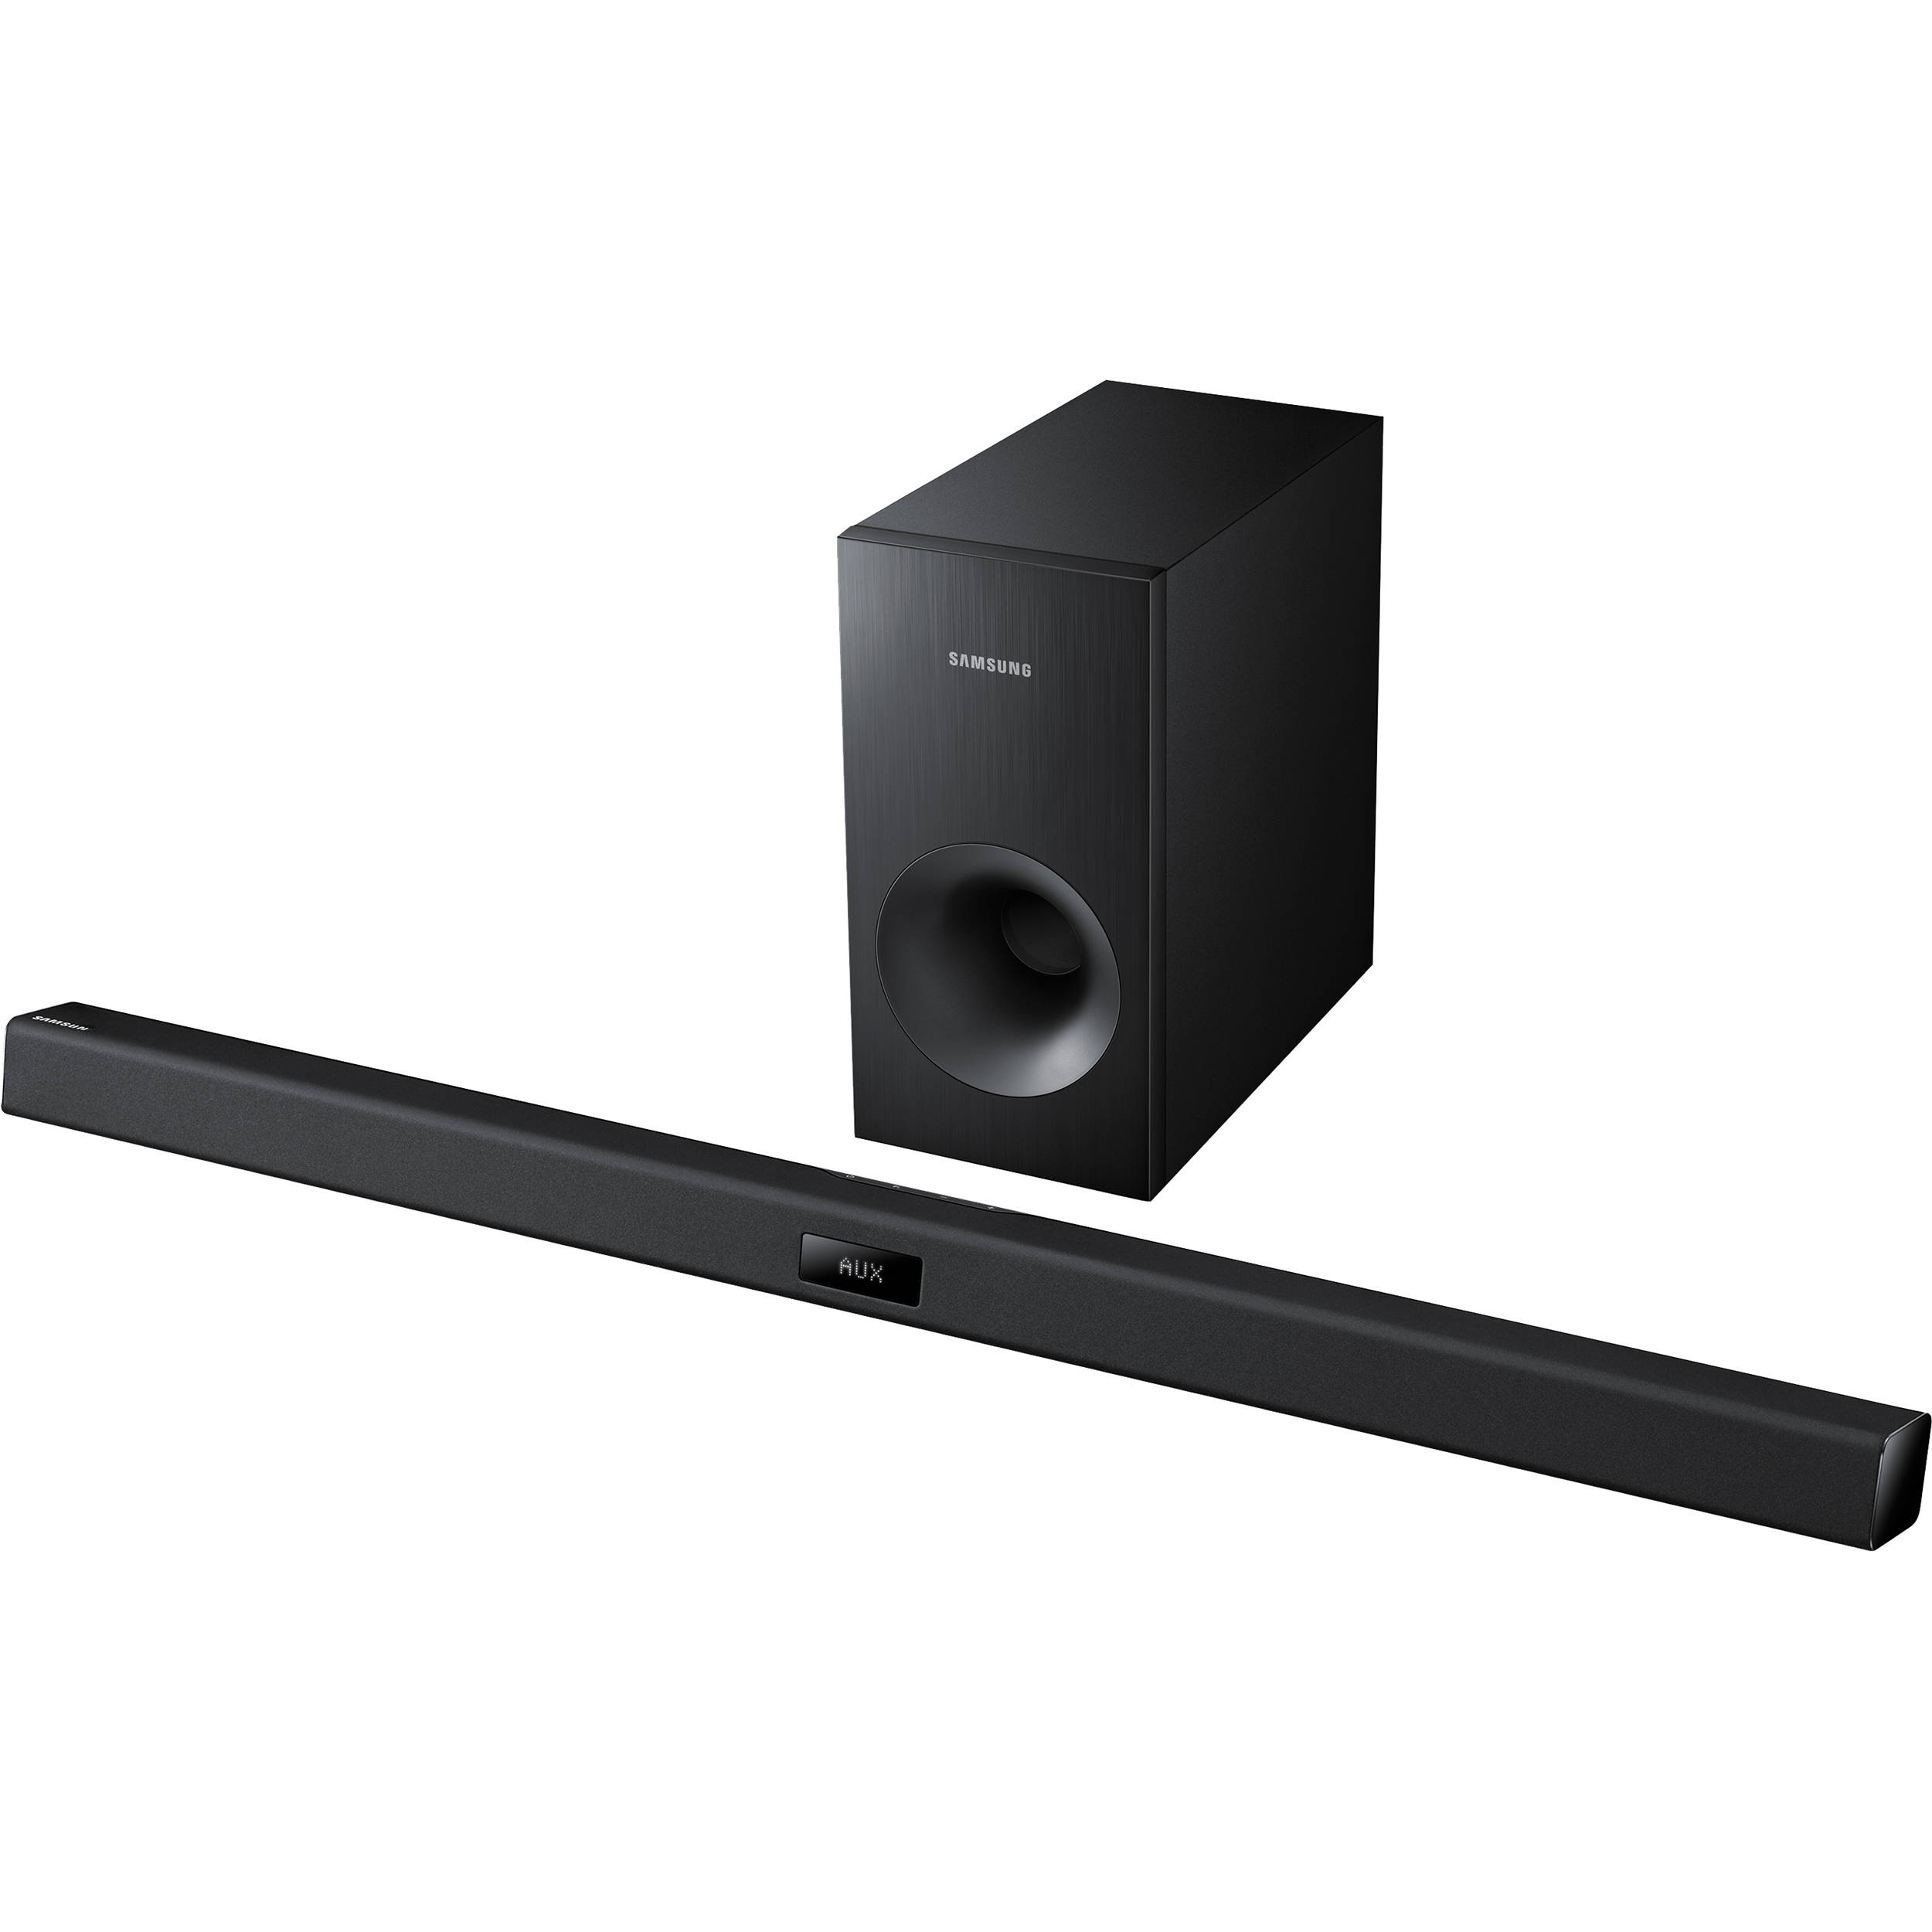 Samsung hw f355 2 1 channel sound bar system with wired hw for Samsung sound bar